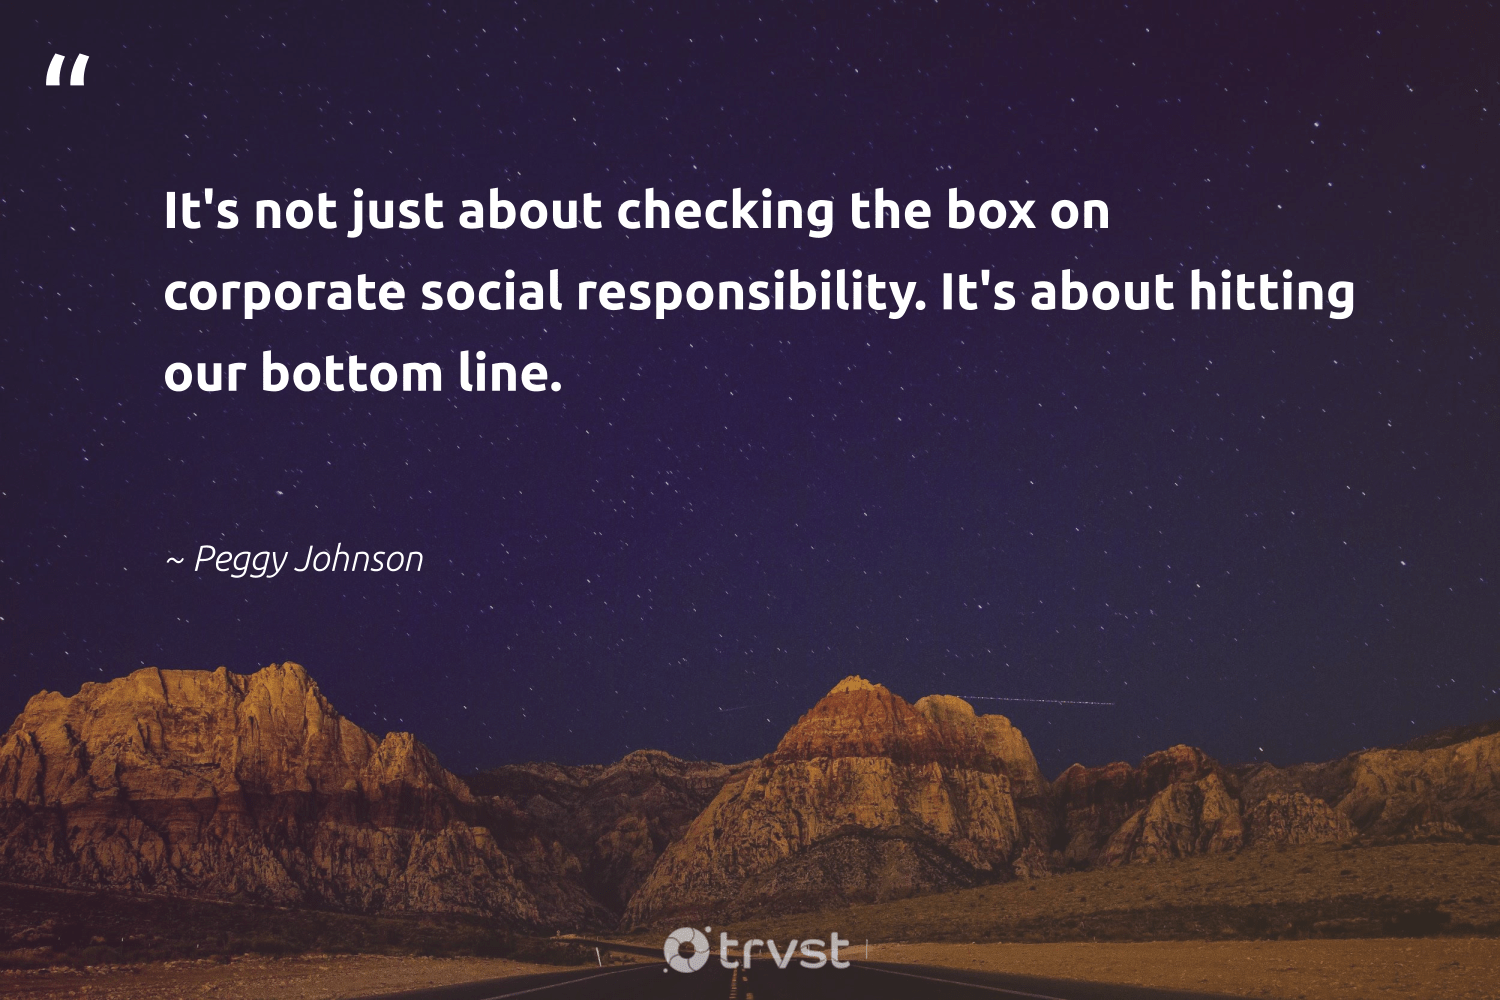 """""""It's not just about checking the box on corporate social responsibility. It's about hitting our bottom line.""""  - Peggy Johnson #trvst #quotes #CSR #corporatesocialresponsibility #corporatevolunteering #socialchange #sharedresponsibility #ecoconscious #giveback #betterplanet #takeaction #futurebusiness"""